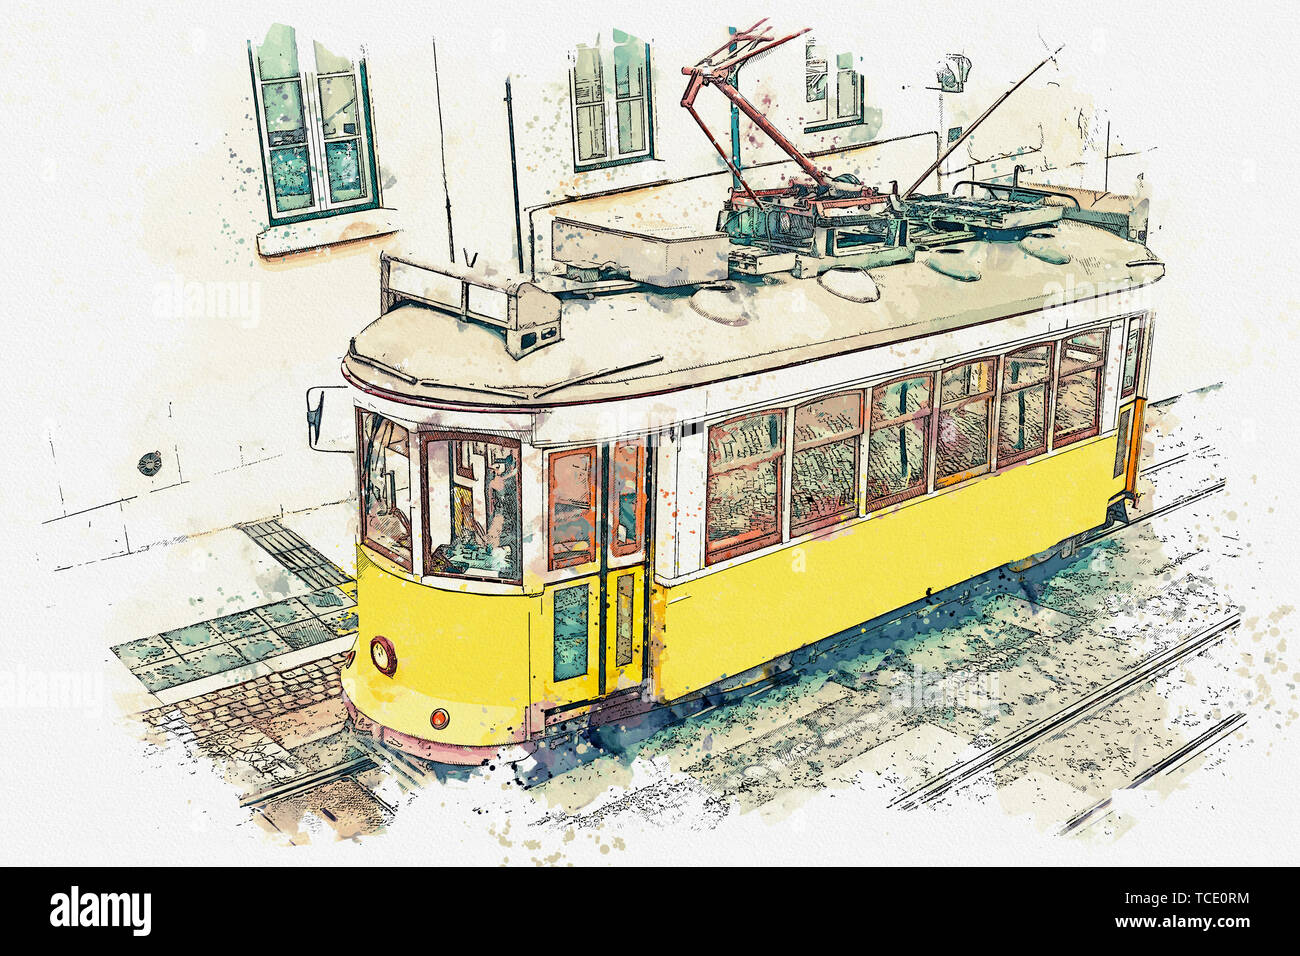 Watercolor sketch or illustration of a traditional yellow tram on a street in Lisbon in Portugal. Stock Photo